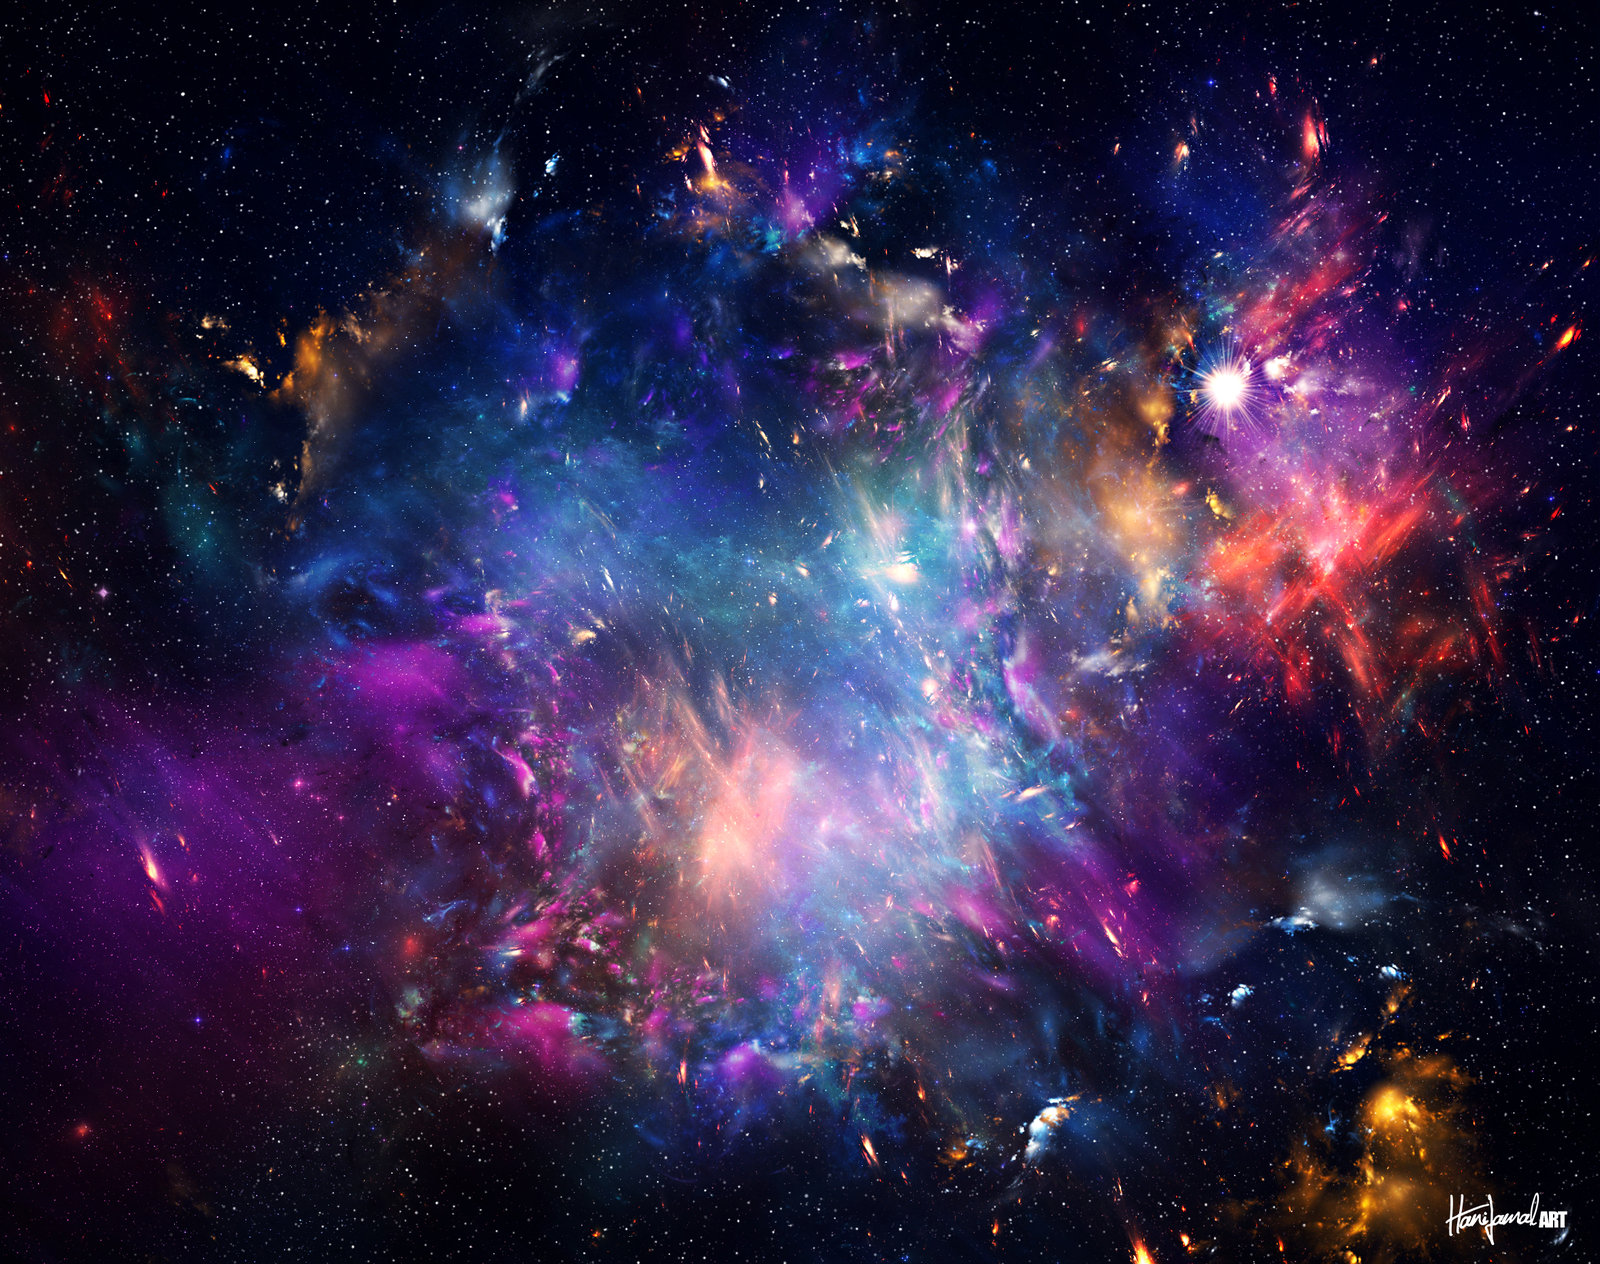 Galaxy Y Hd Love Wallpaper : Galaxy Weird: DIVERSAS imagens Galaxy s para wallpaper!